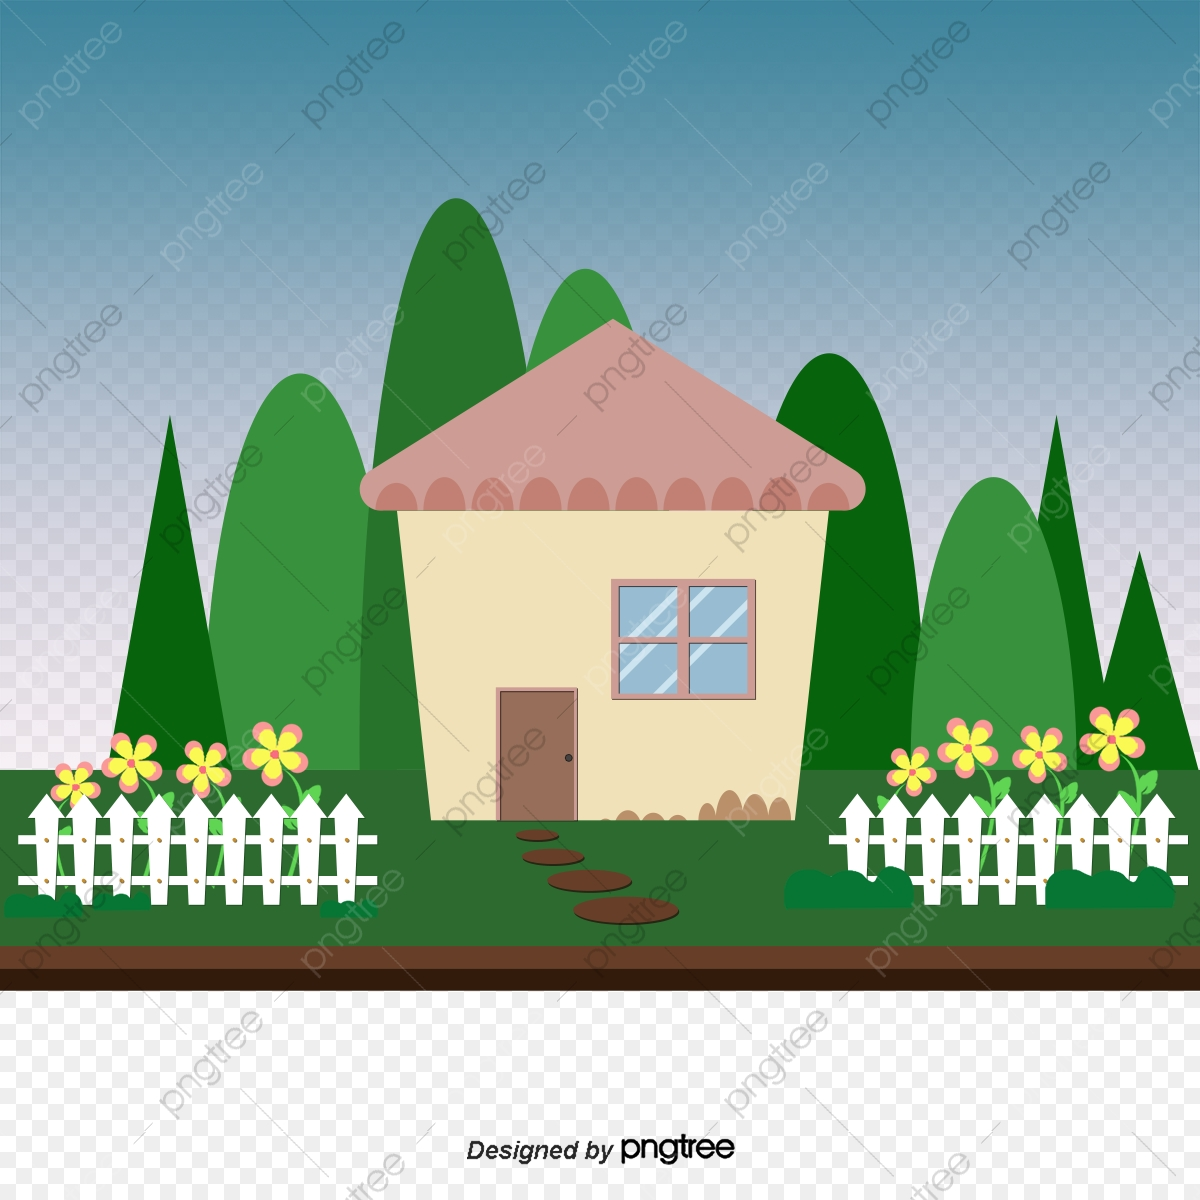 Cartoon House With A Garden Vector Material Downloaded